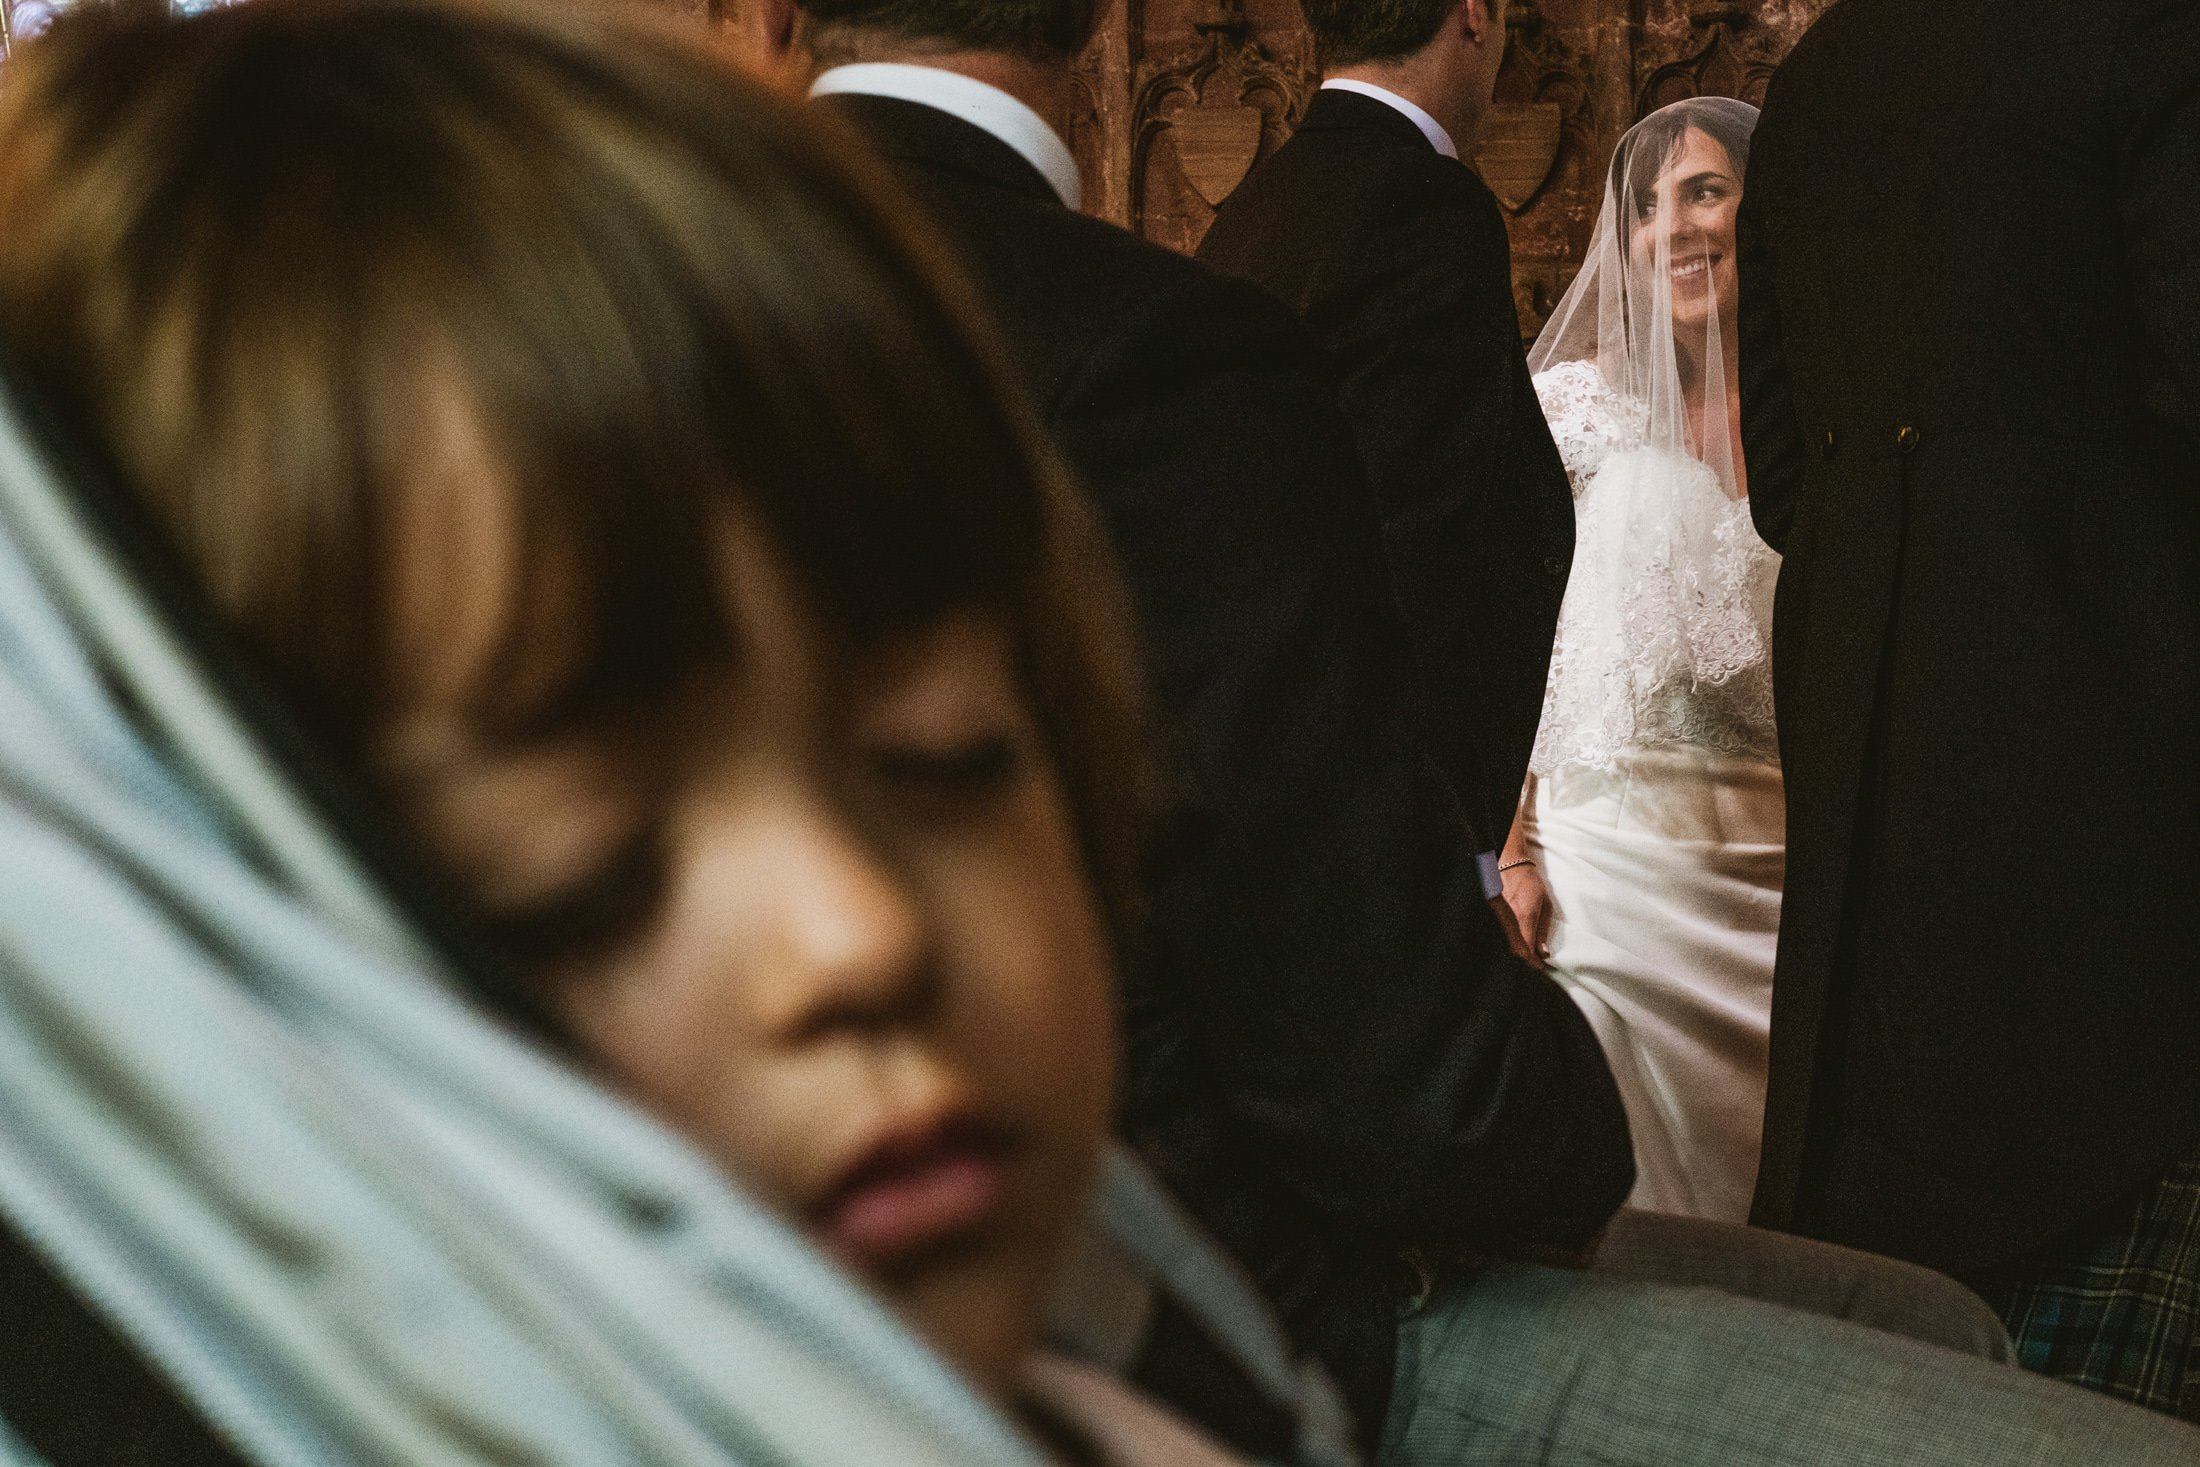 Cheshire documentary wedding photography, little boy sleeping during the ceremony, bride in background